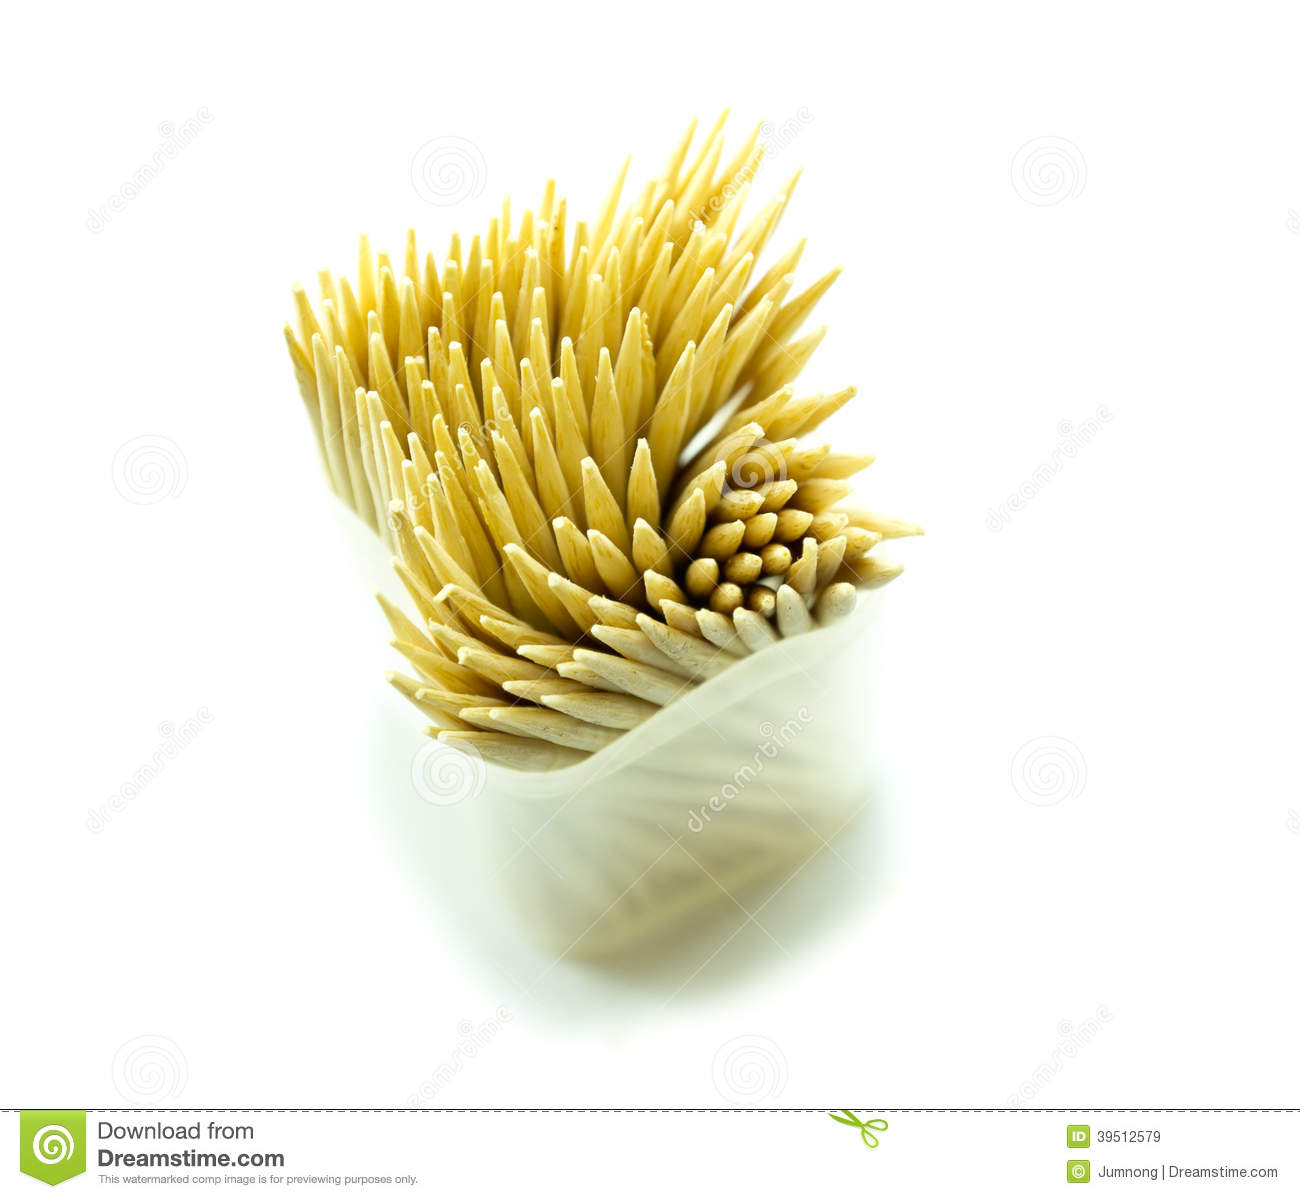 Bamboo toothpick on white backgroud